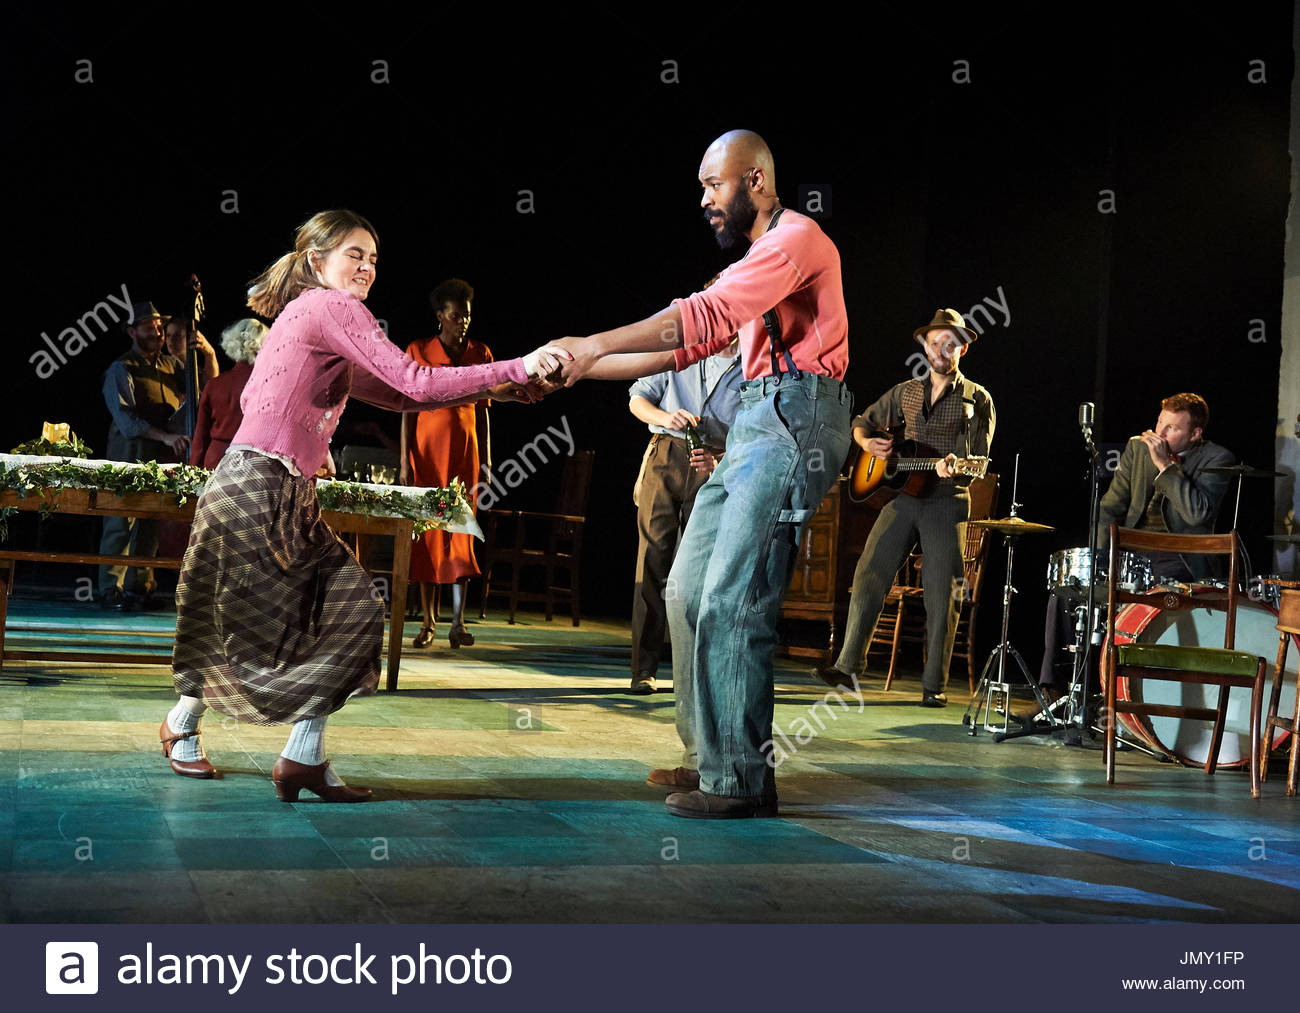 Girl From The North Country,written and directed by Conor McPherson, music and Lyrics by Bob Dylan. With Shirley Henderson as Elizabeth Laine, Arinze Kene as Joe Scott. Opens at The Old Vic Theatre on 26/7/17. - Stock Image